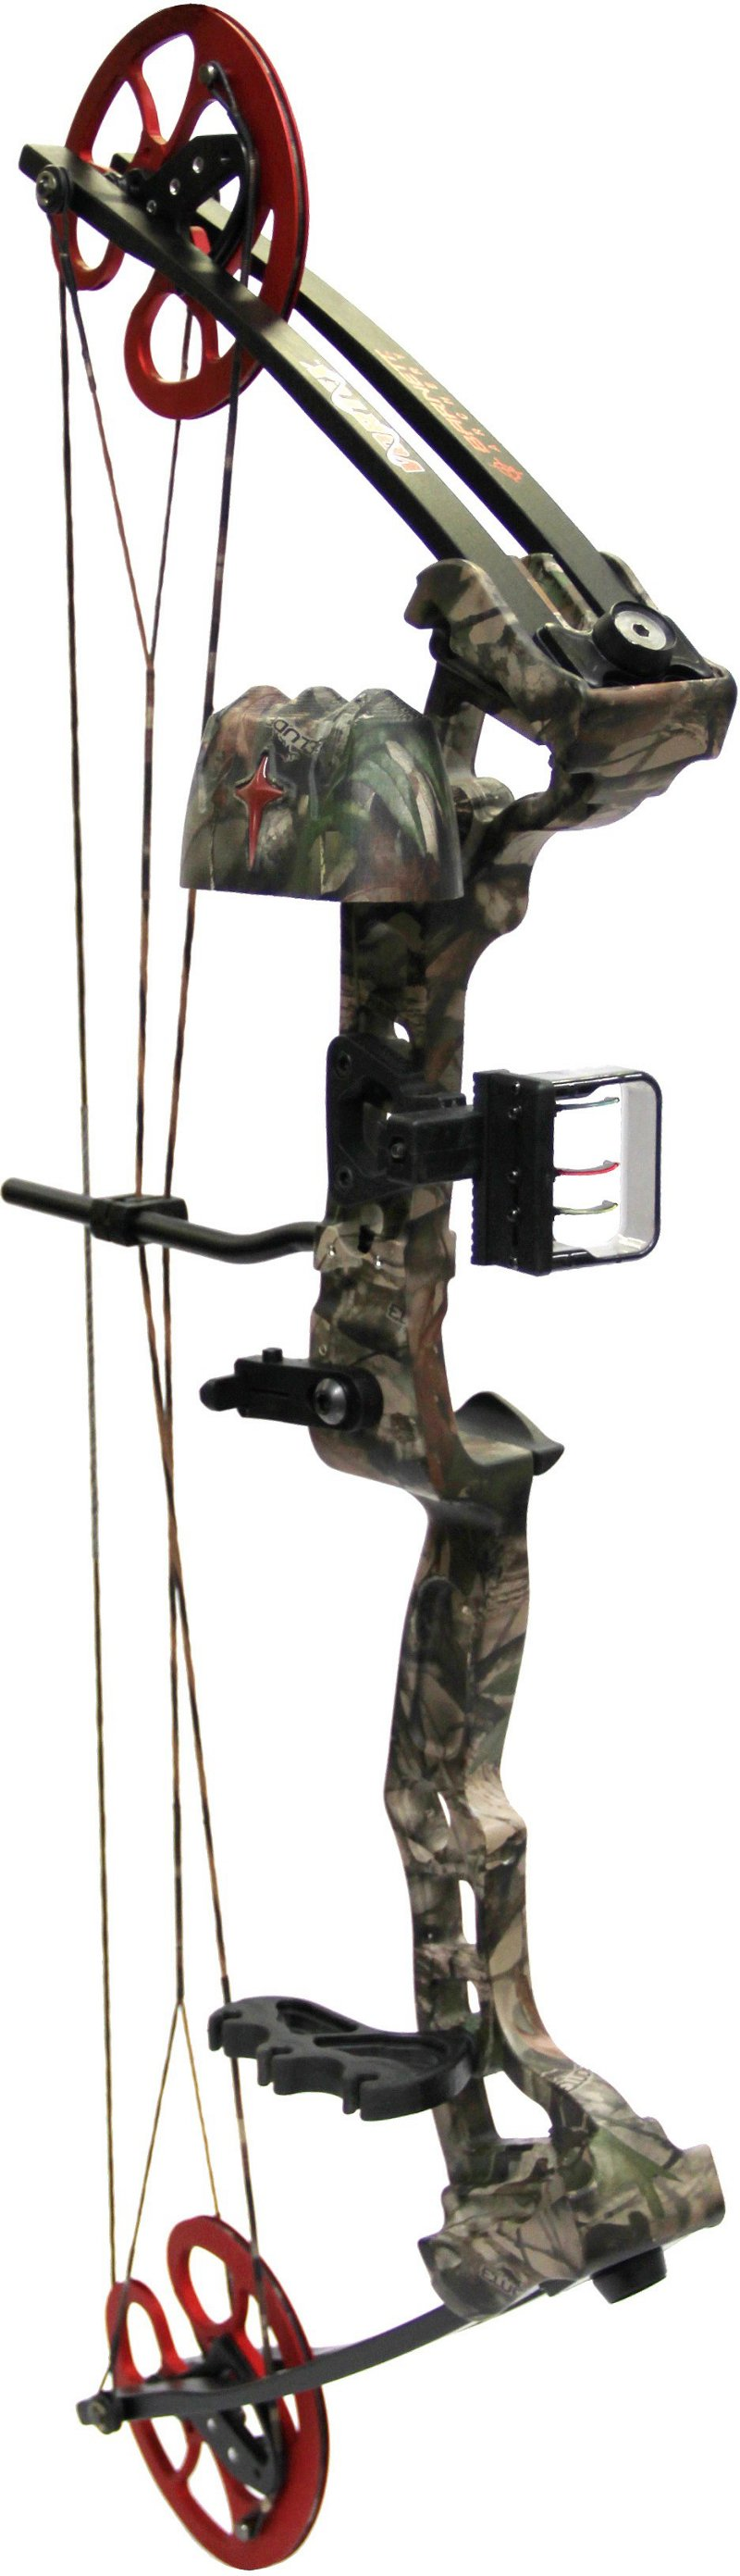 Barnett Vortex Hunter Adjustable Compound Bow – Bows And Cross Bows at Academy Sports